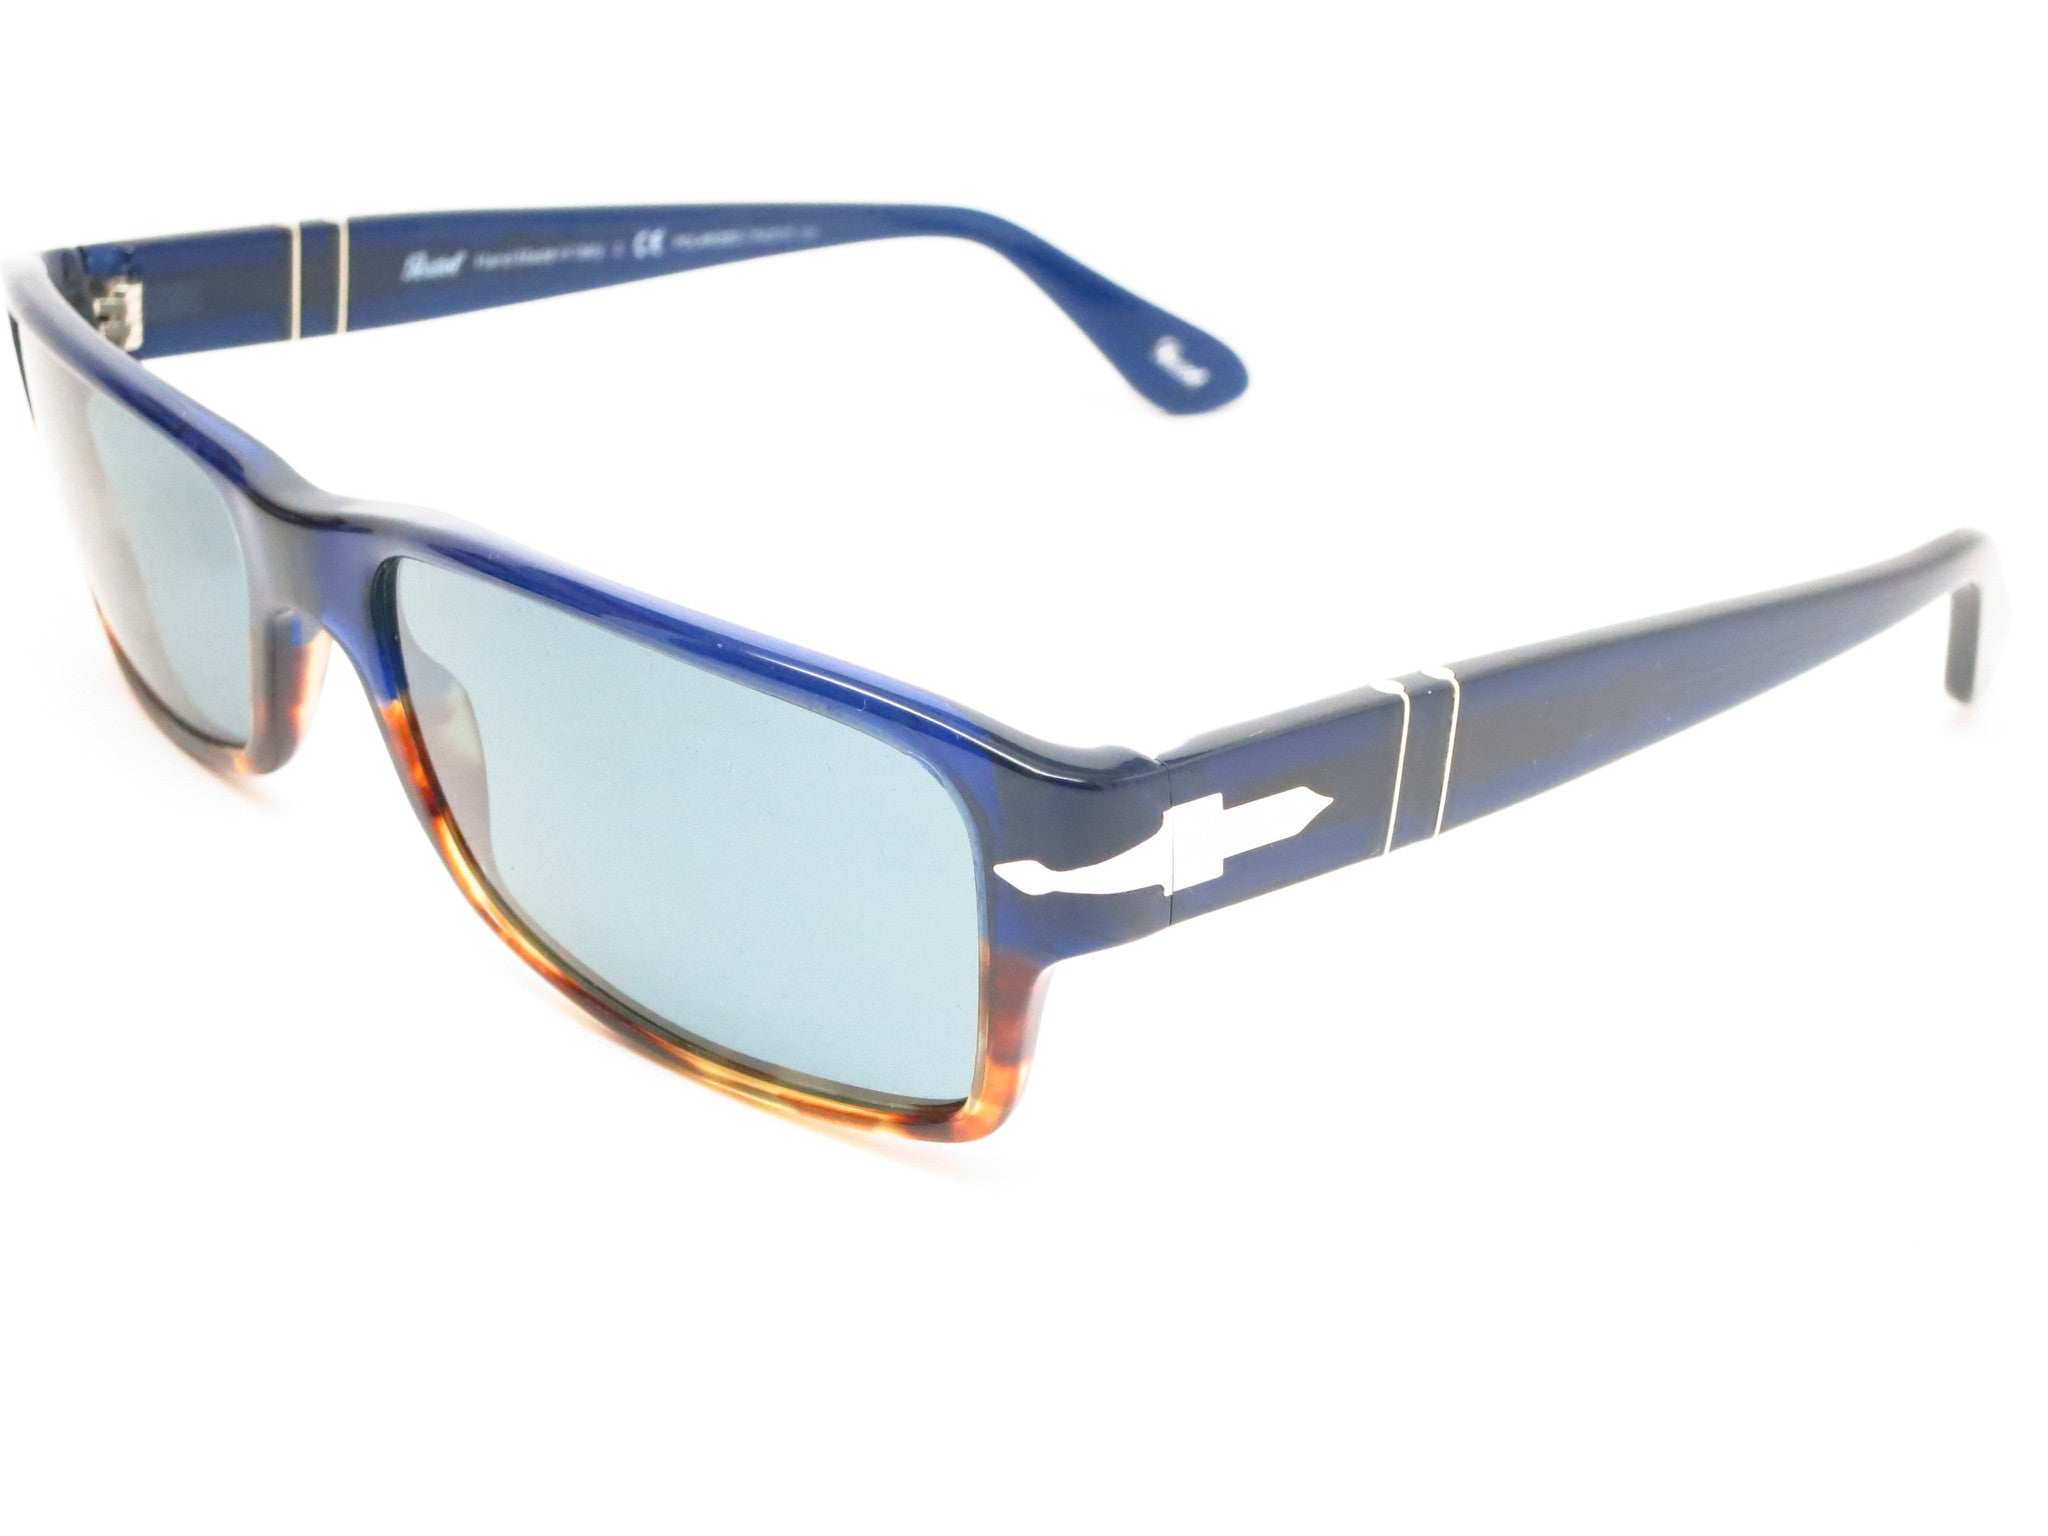 Persol PO 2747-S 955/4N Havana / Blue Sunglasses - Eye Heart Shades